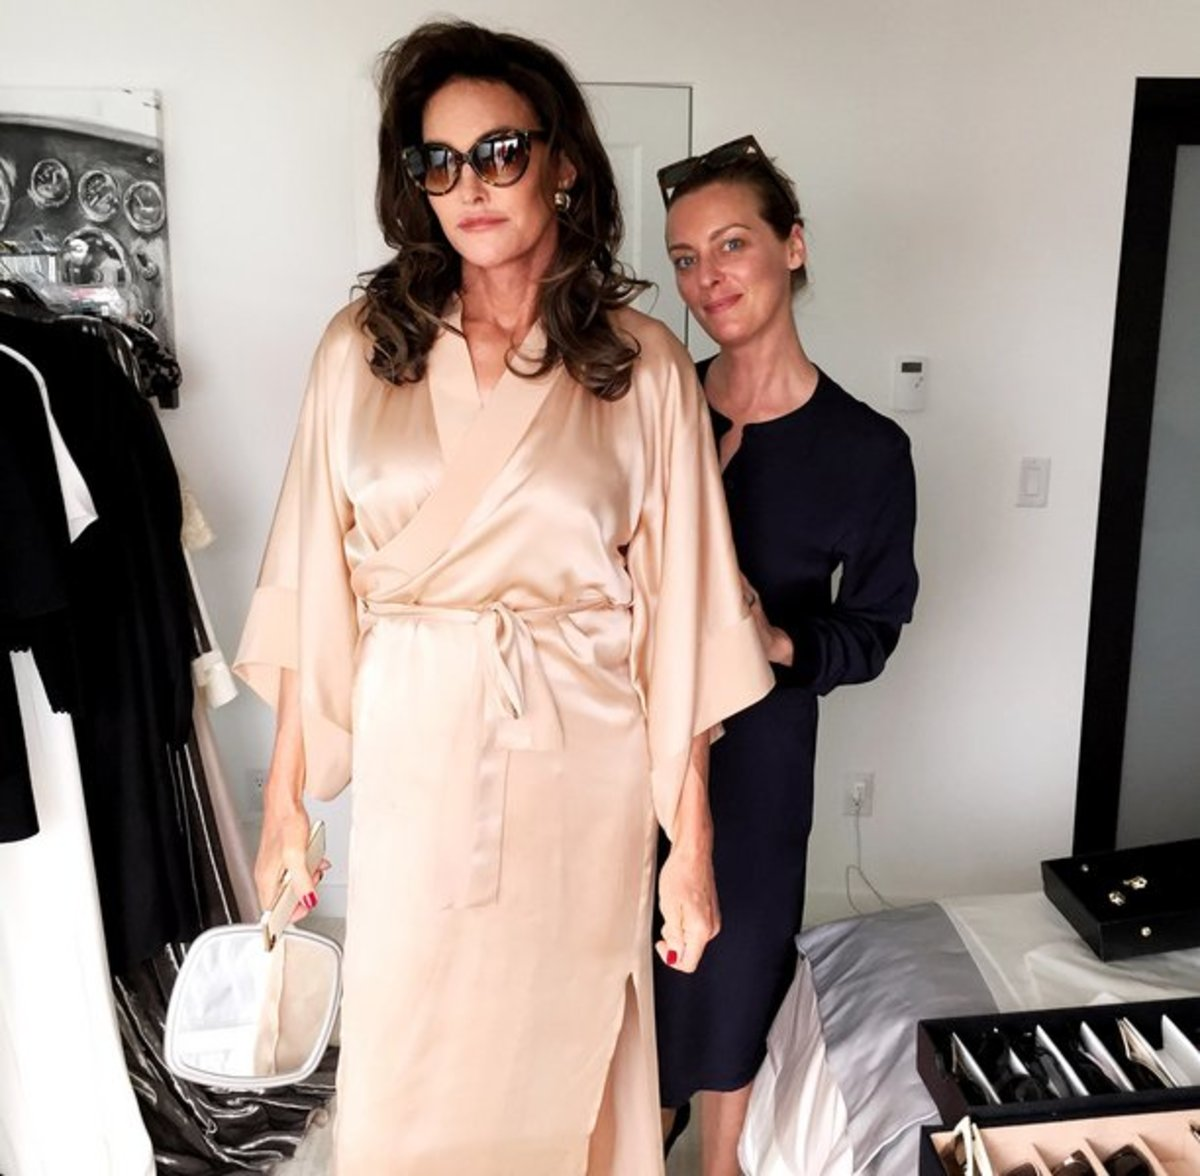 Jessica Diehl and Caitlyn Jenner on the set of the 'Vanity Fair' cover shoot. Photo: Vanity Fair